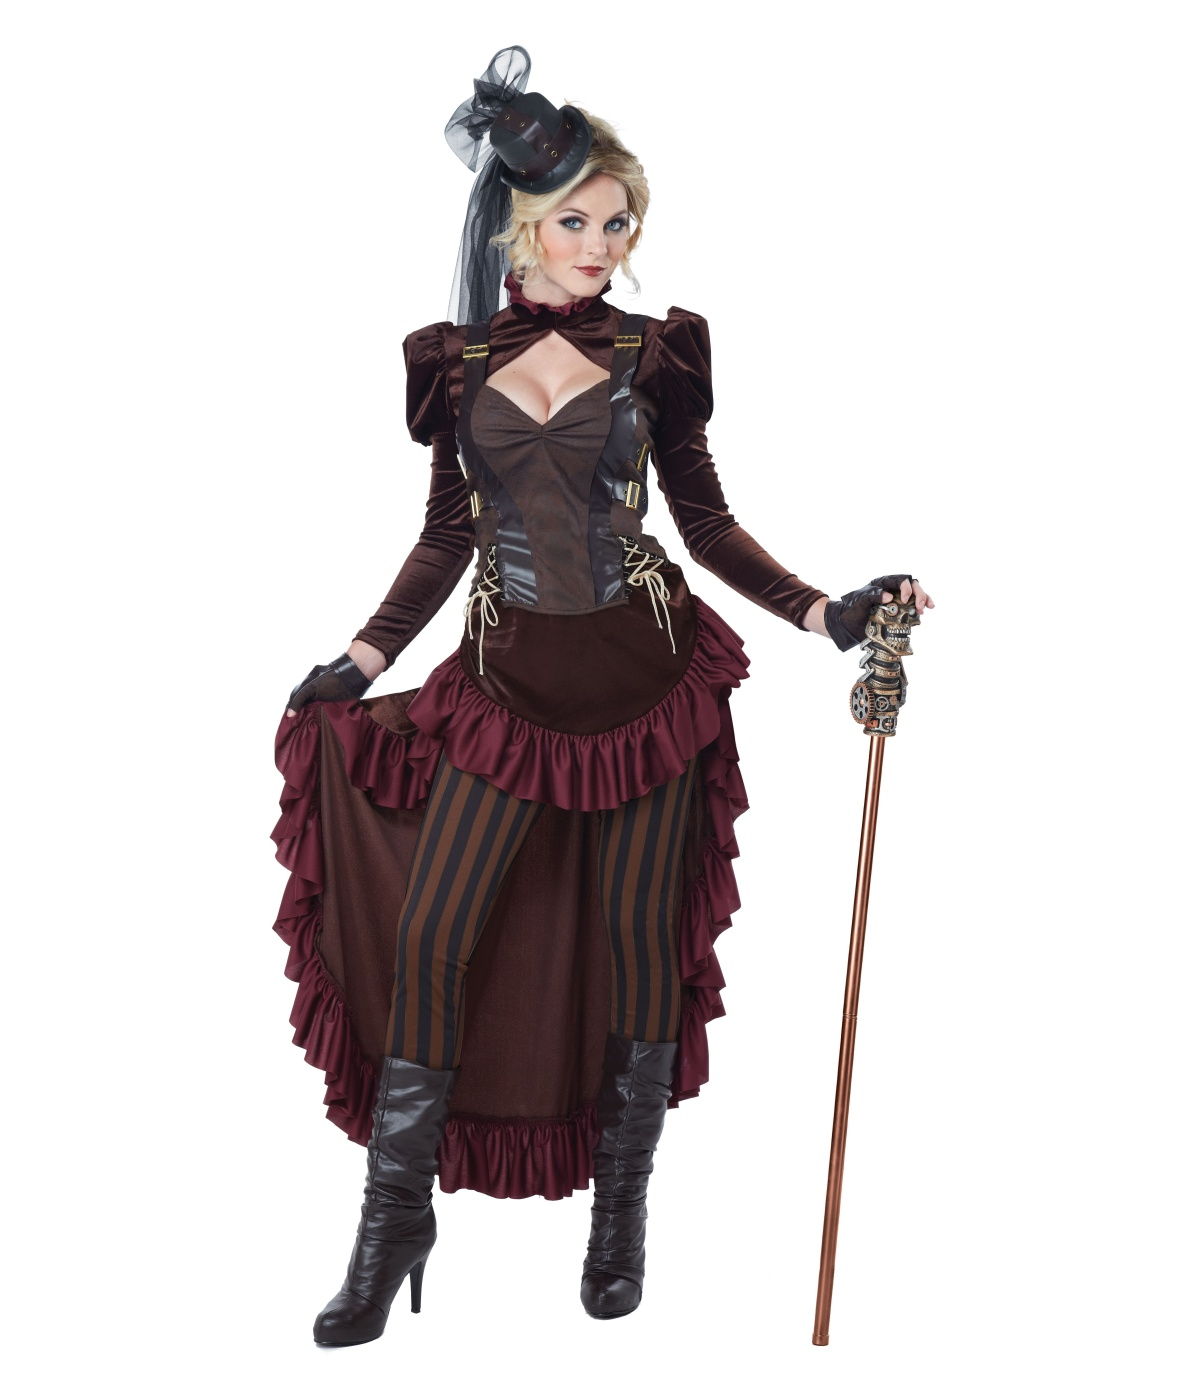 Glamorous Victorian Steampunk Woman Costume